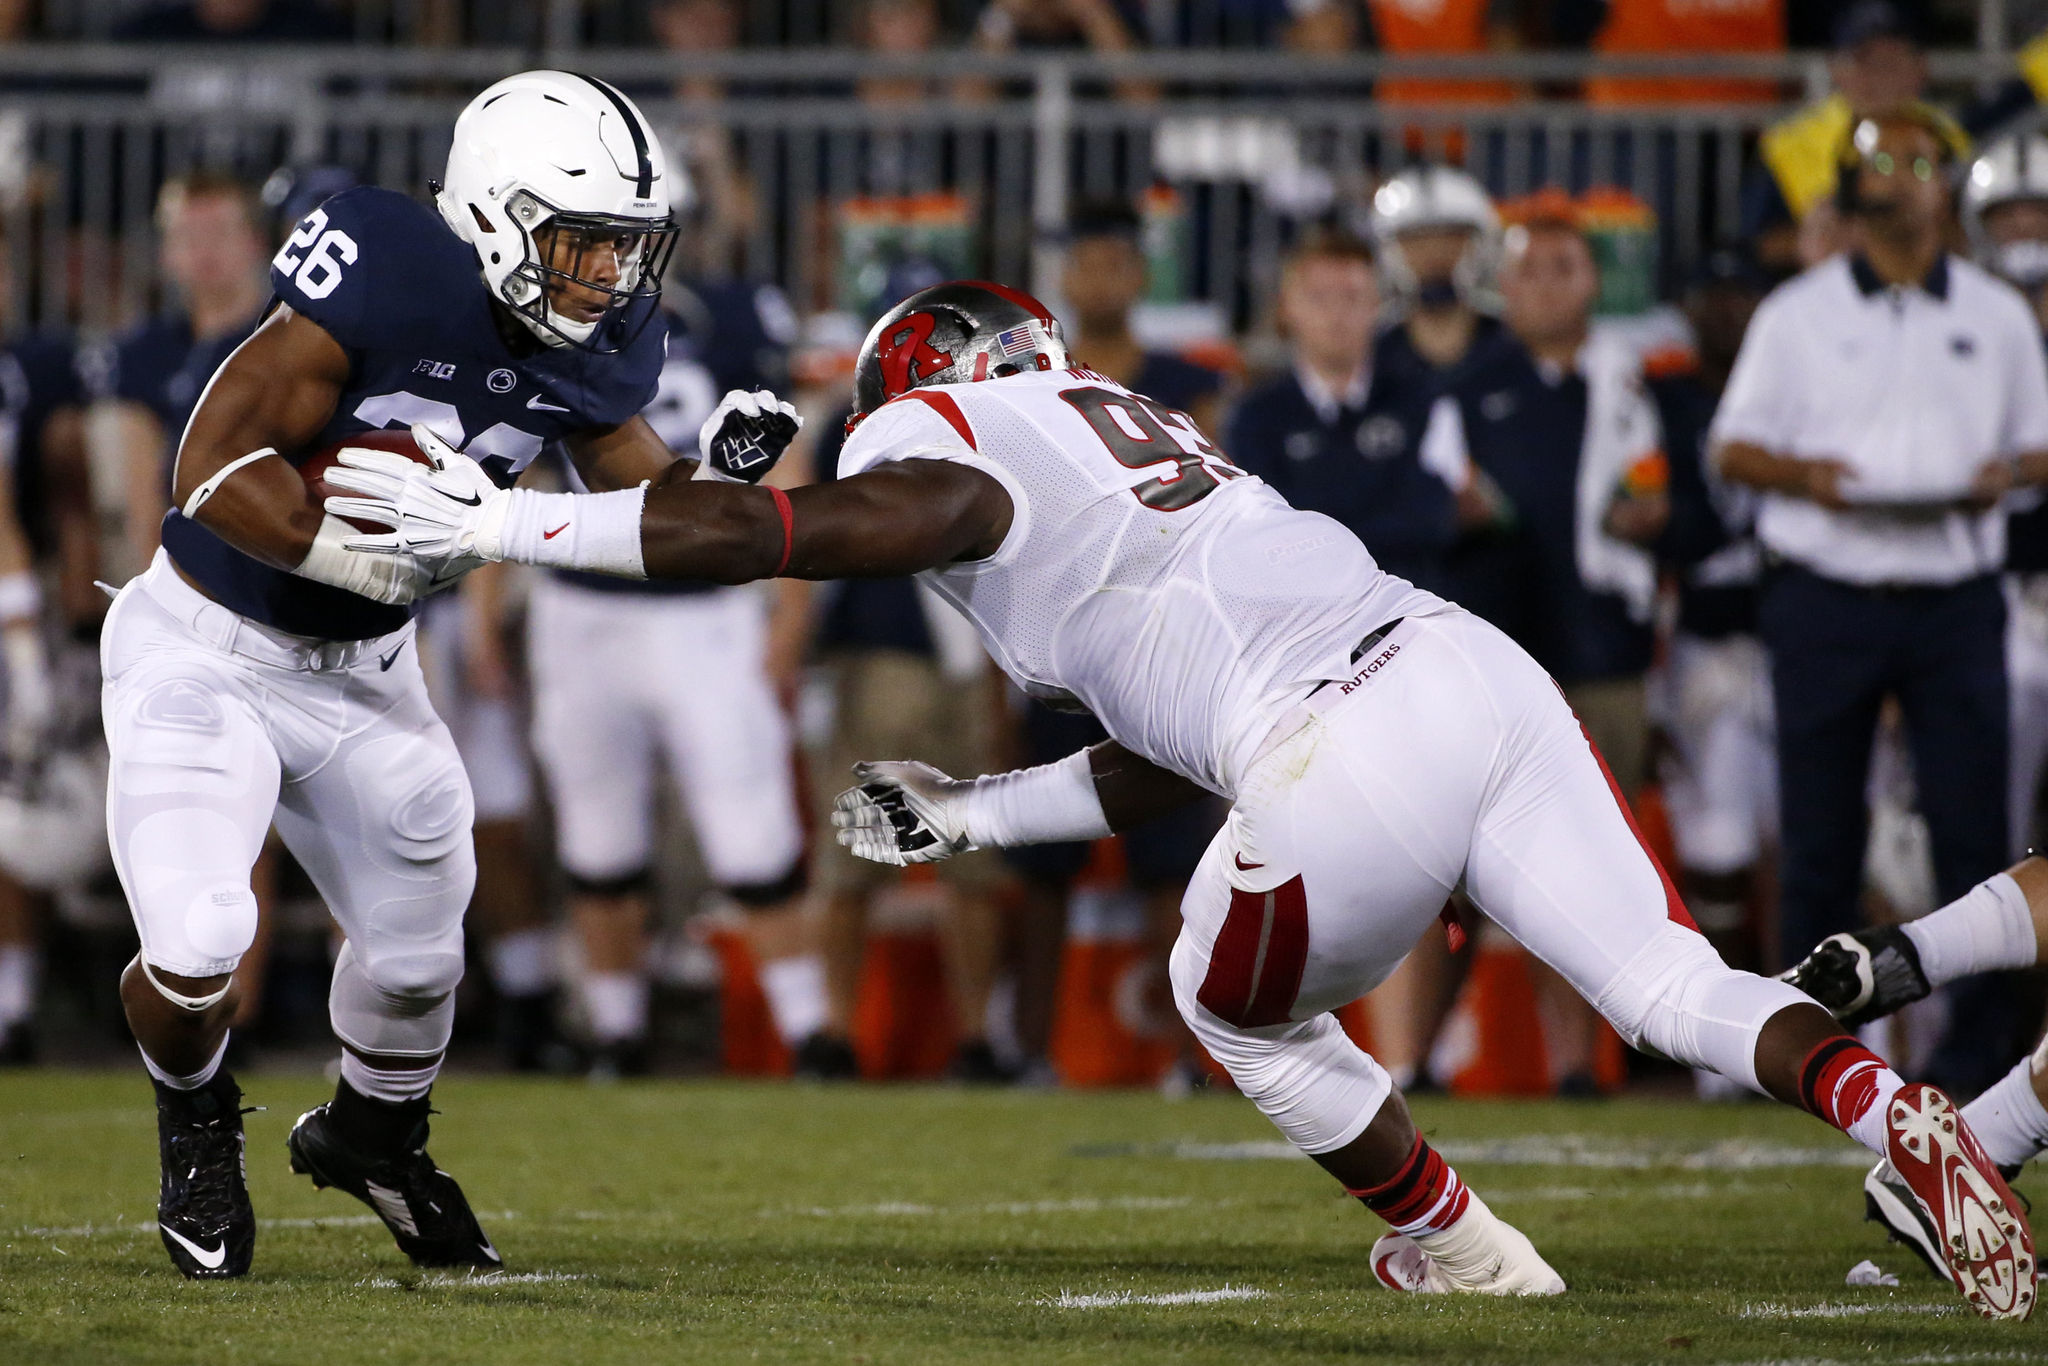 penn state adds two more night games to 2016 football schedule - the